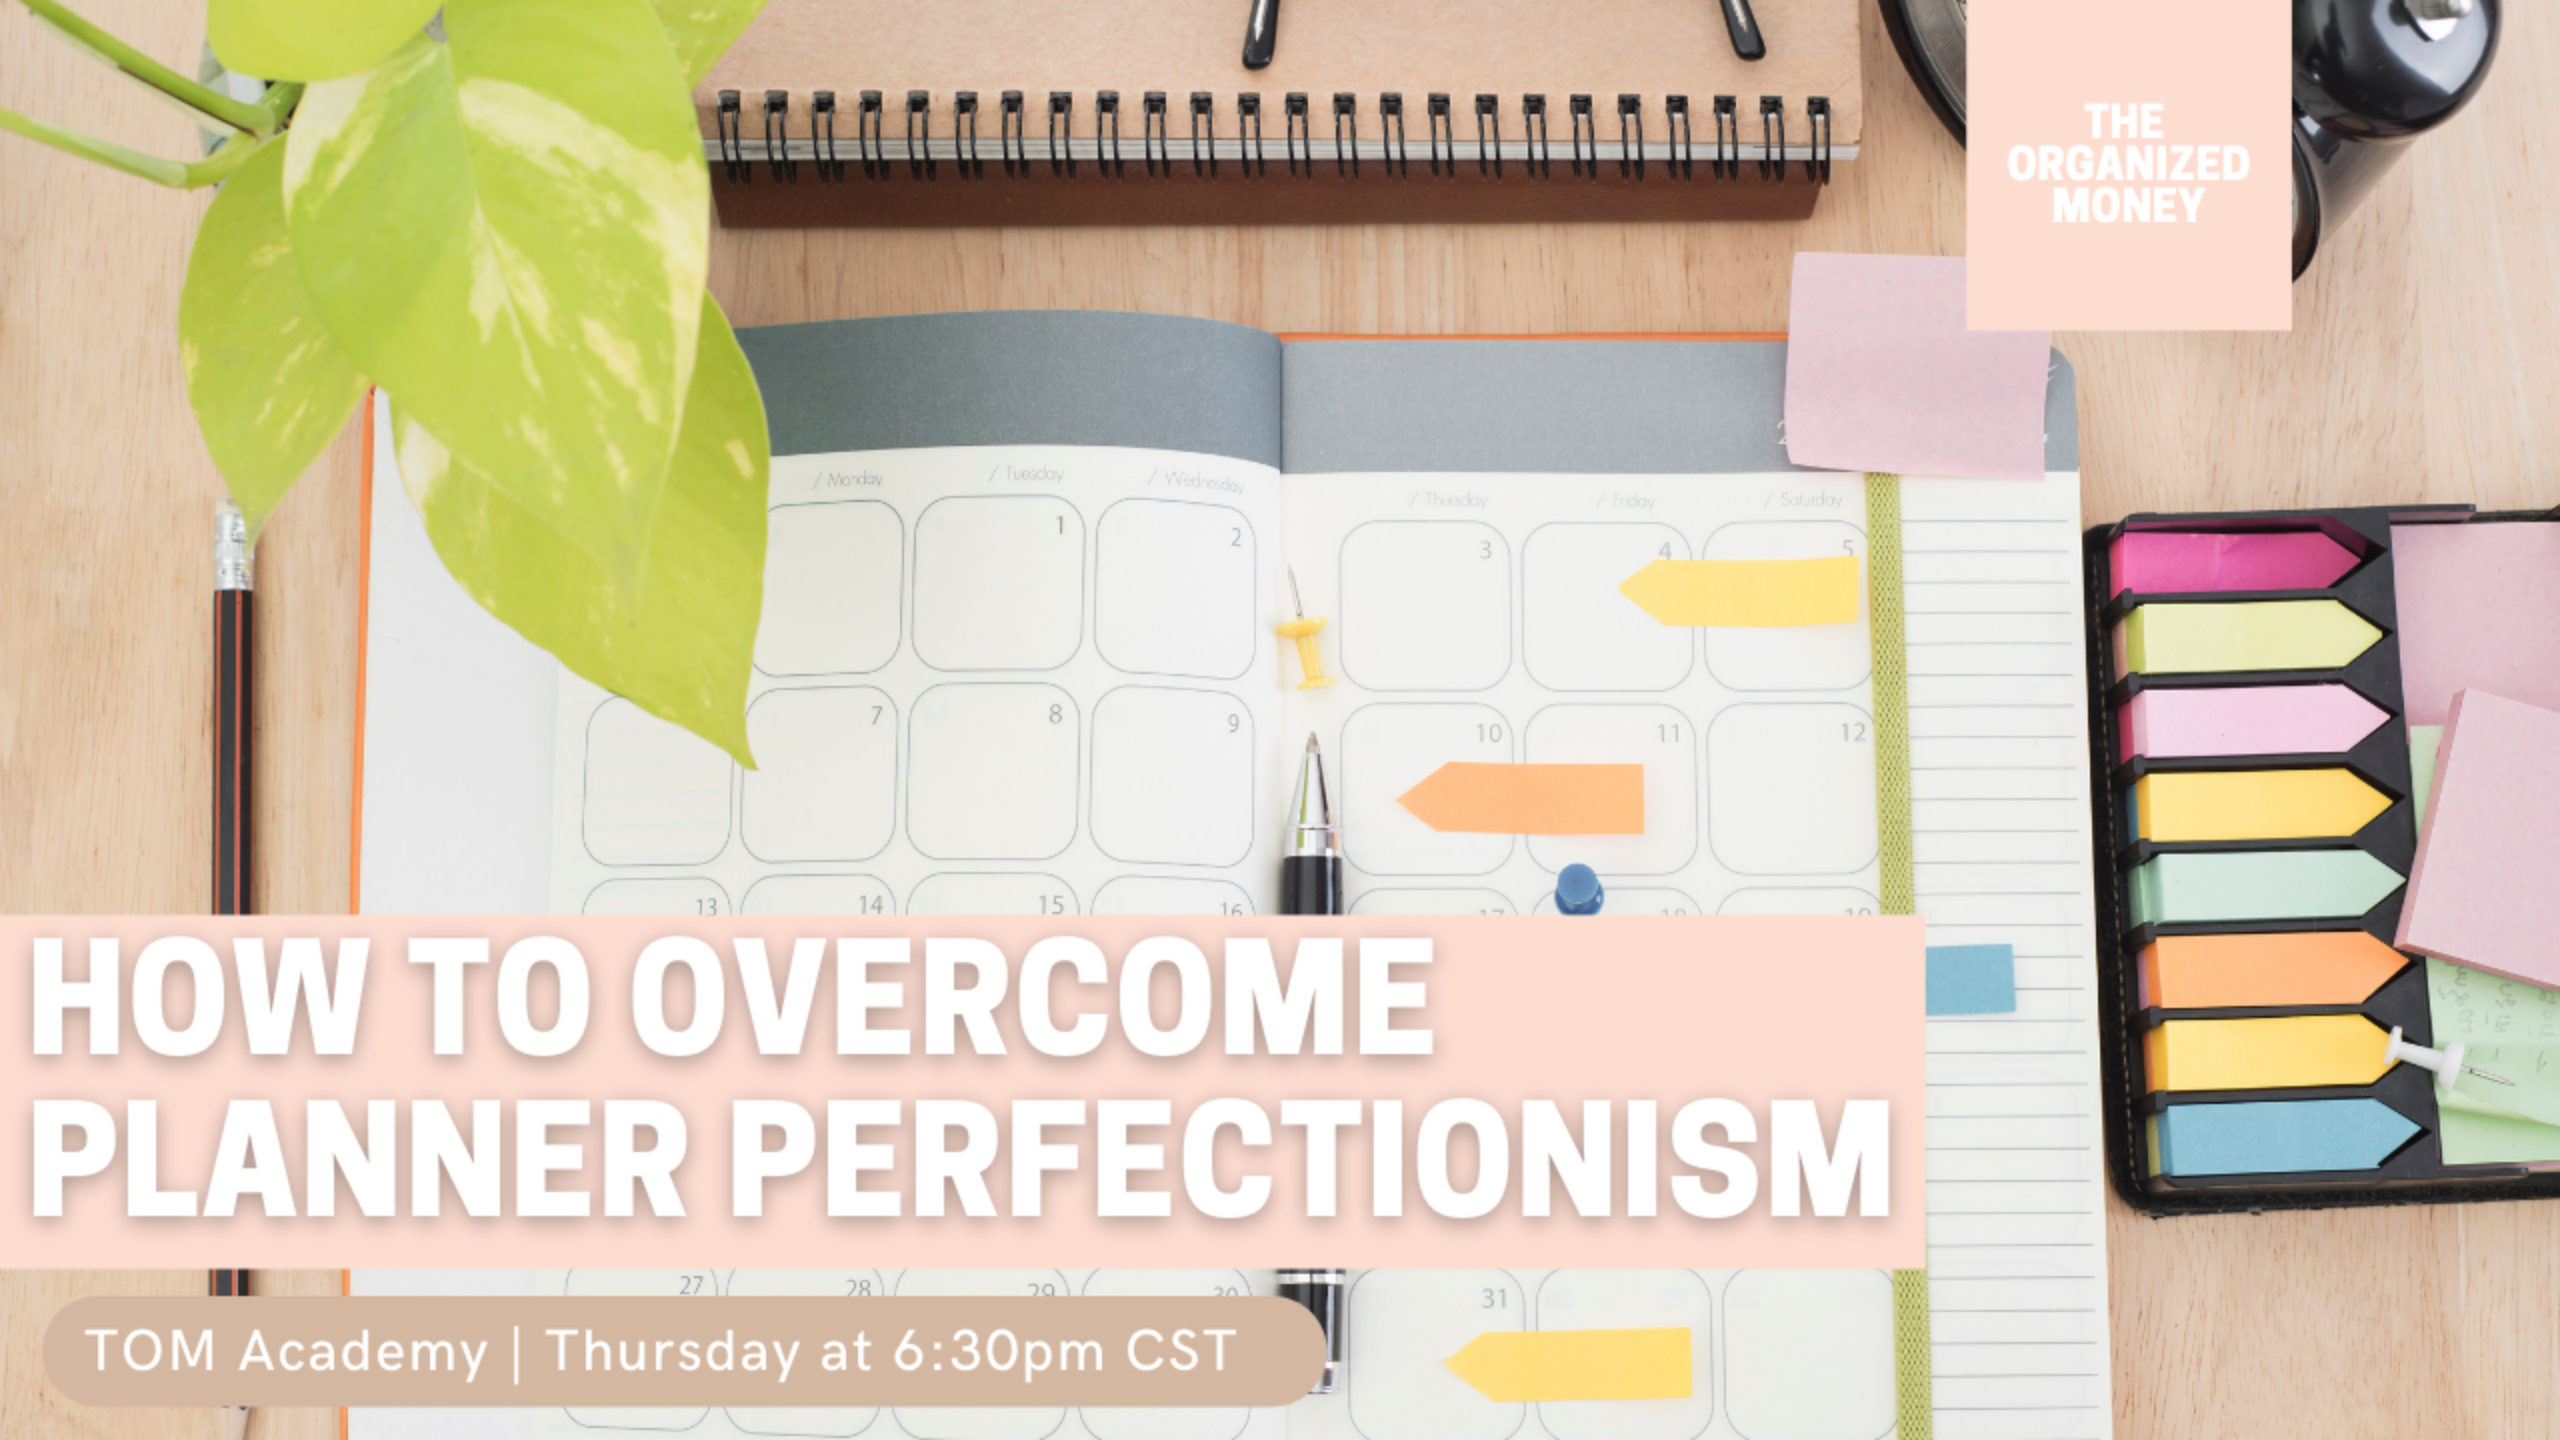 How To Overcome Planner Perfectionism